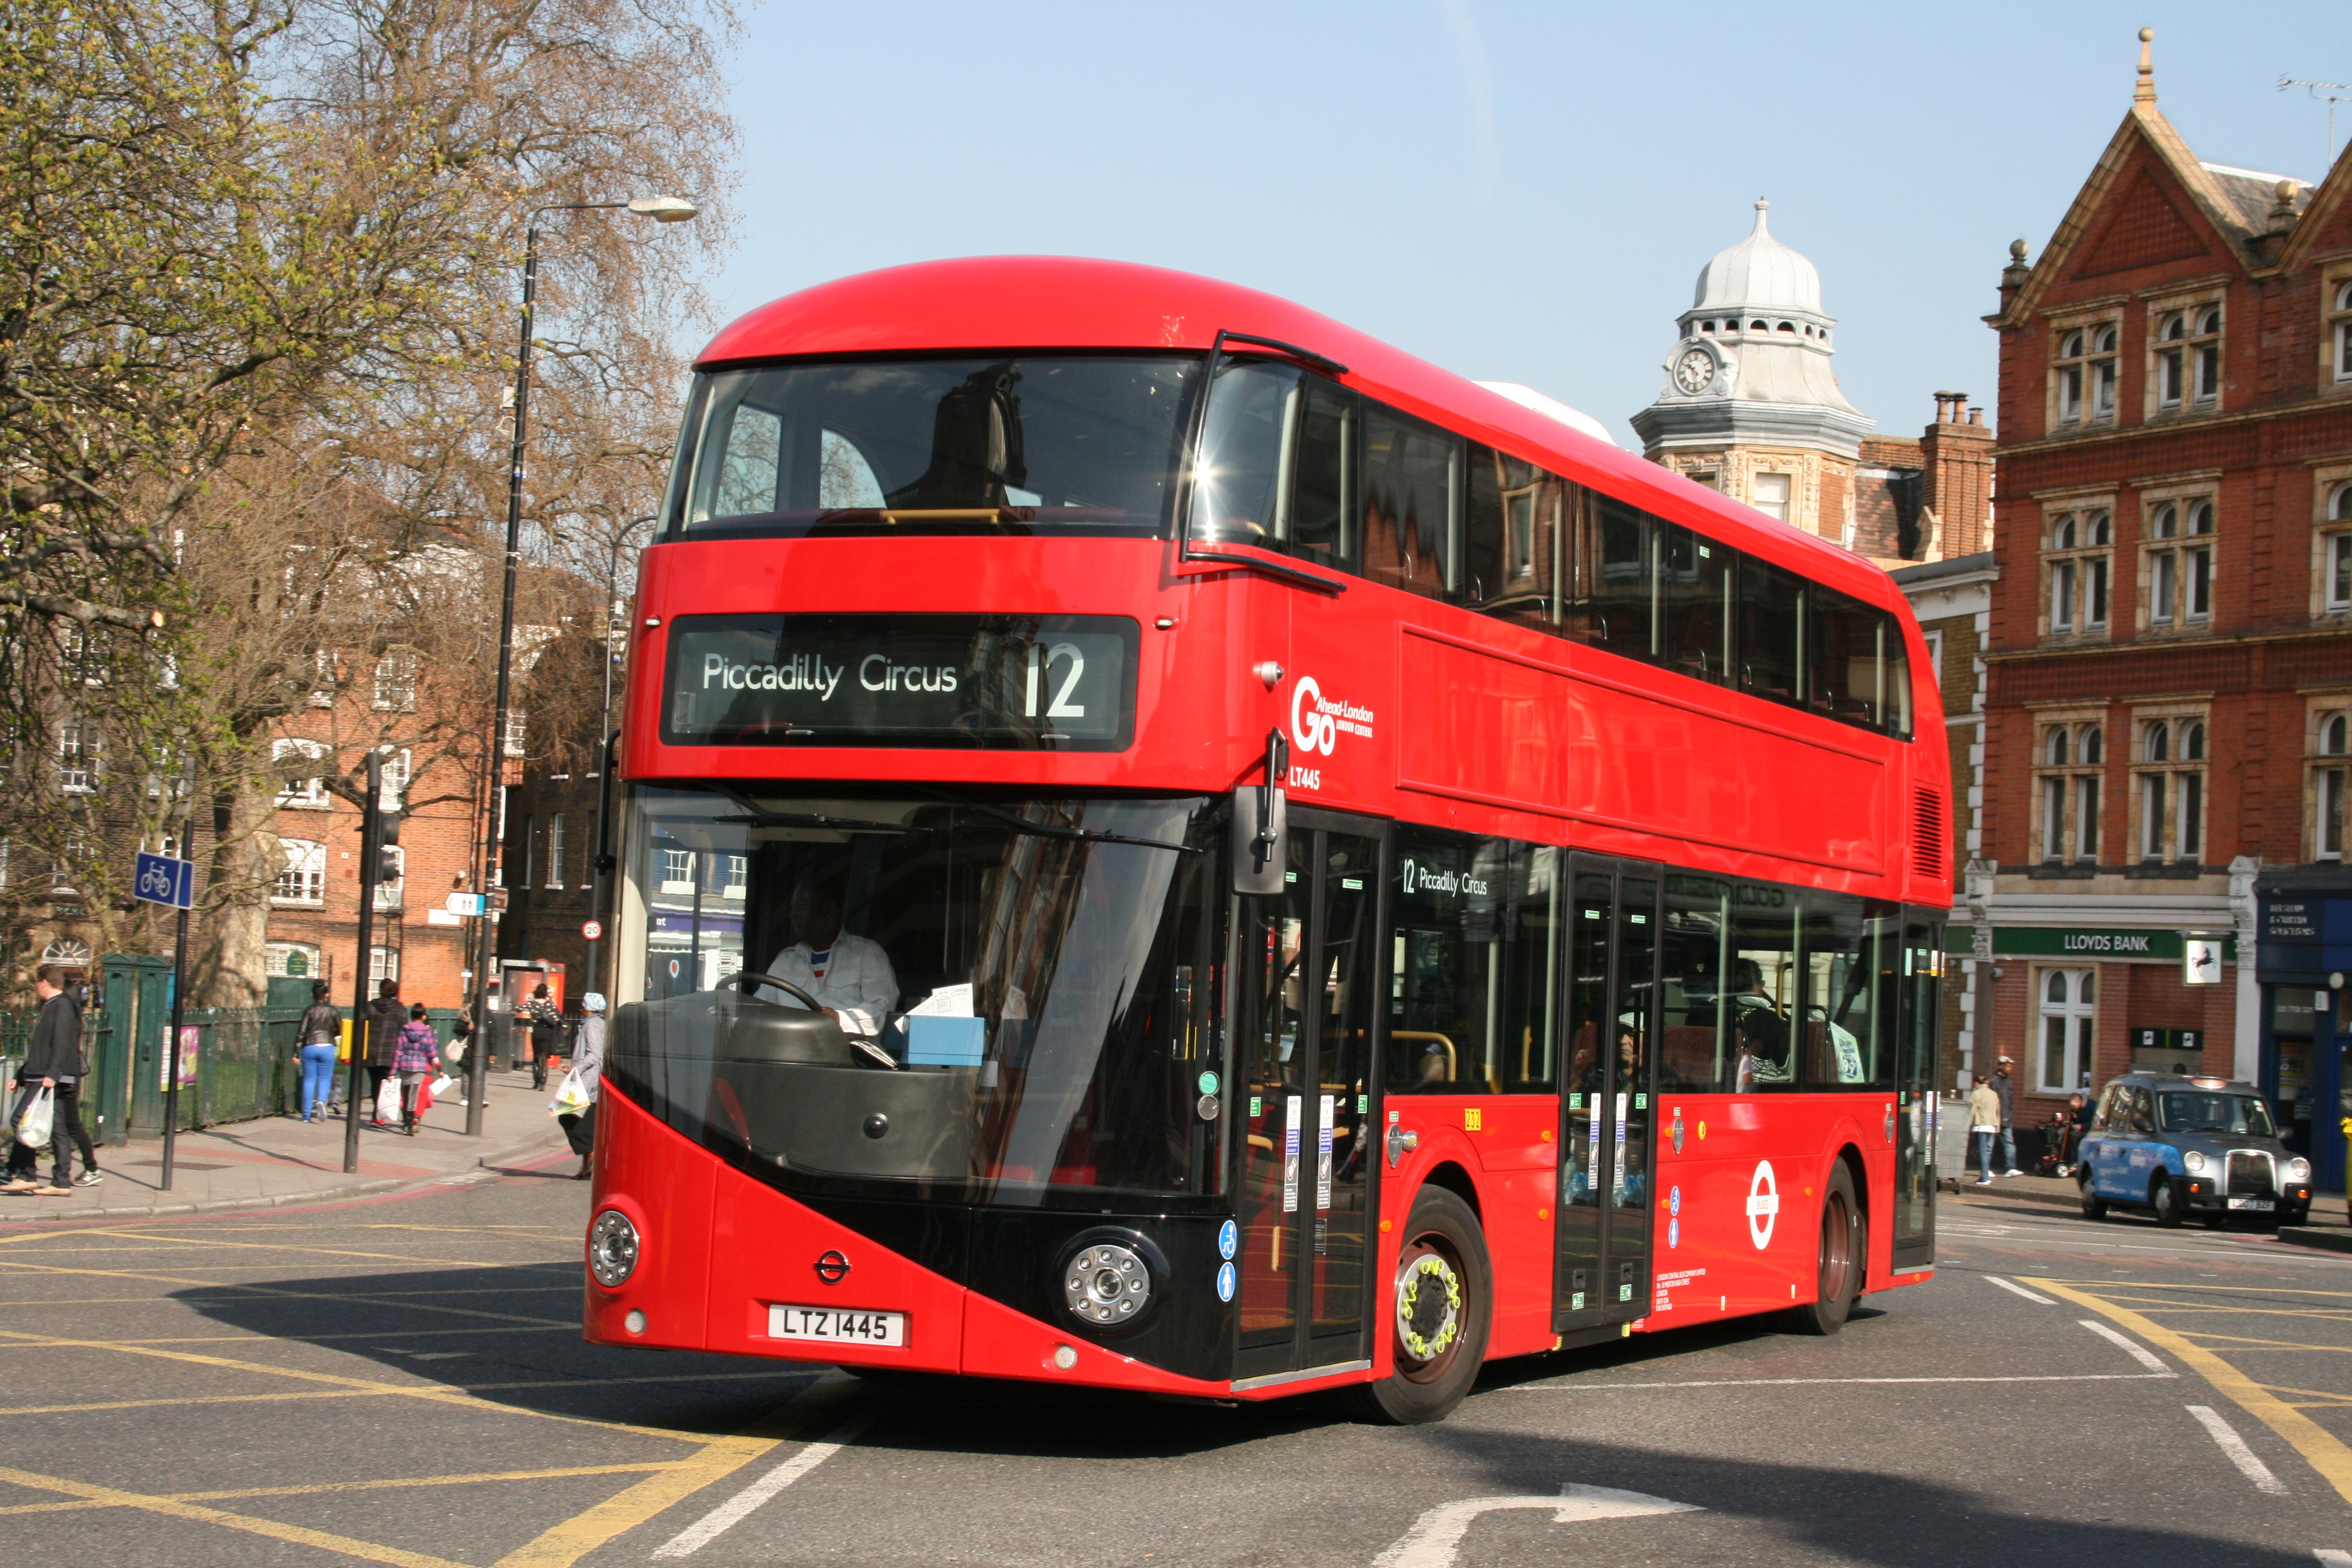 london buses route 12 - wikipedia